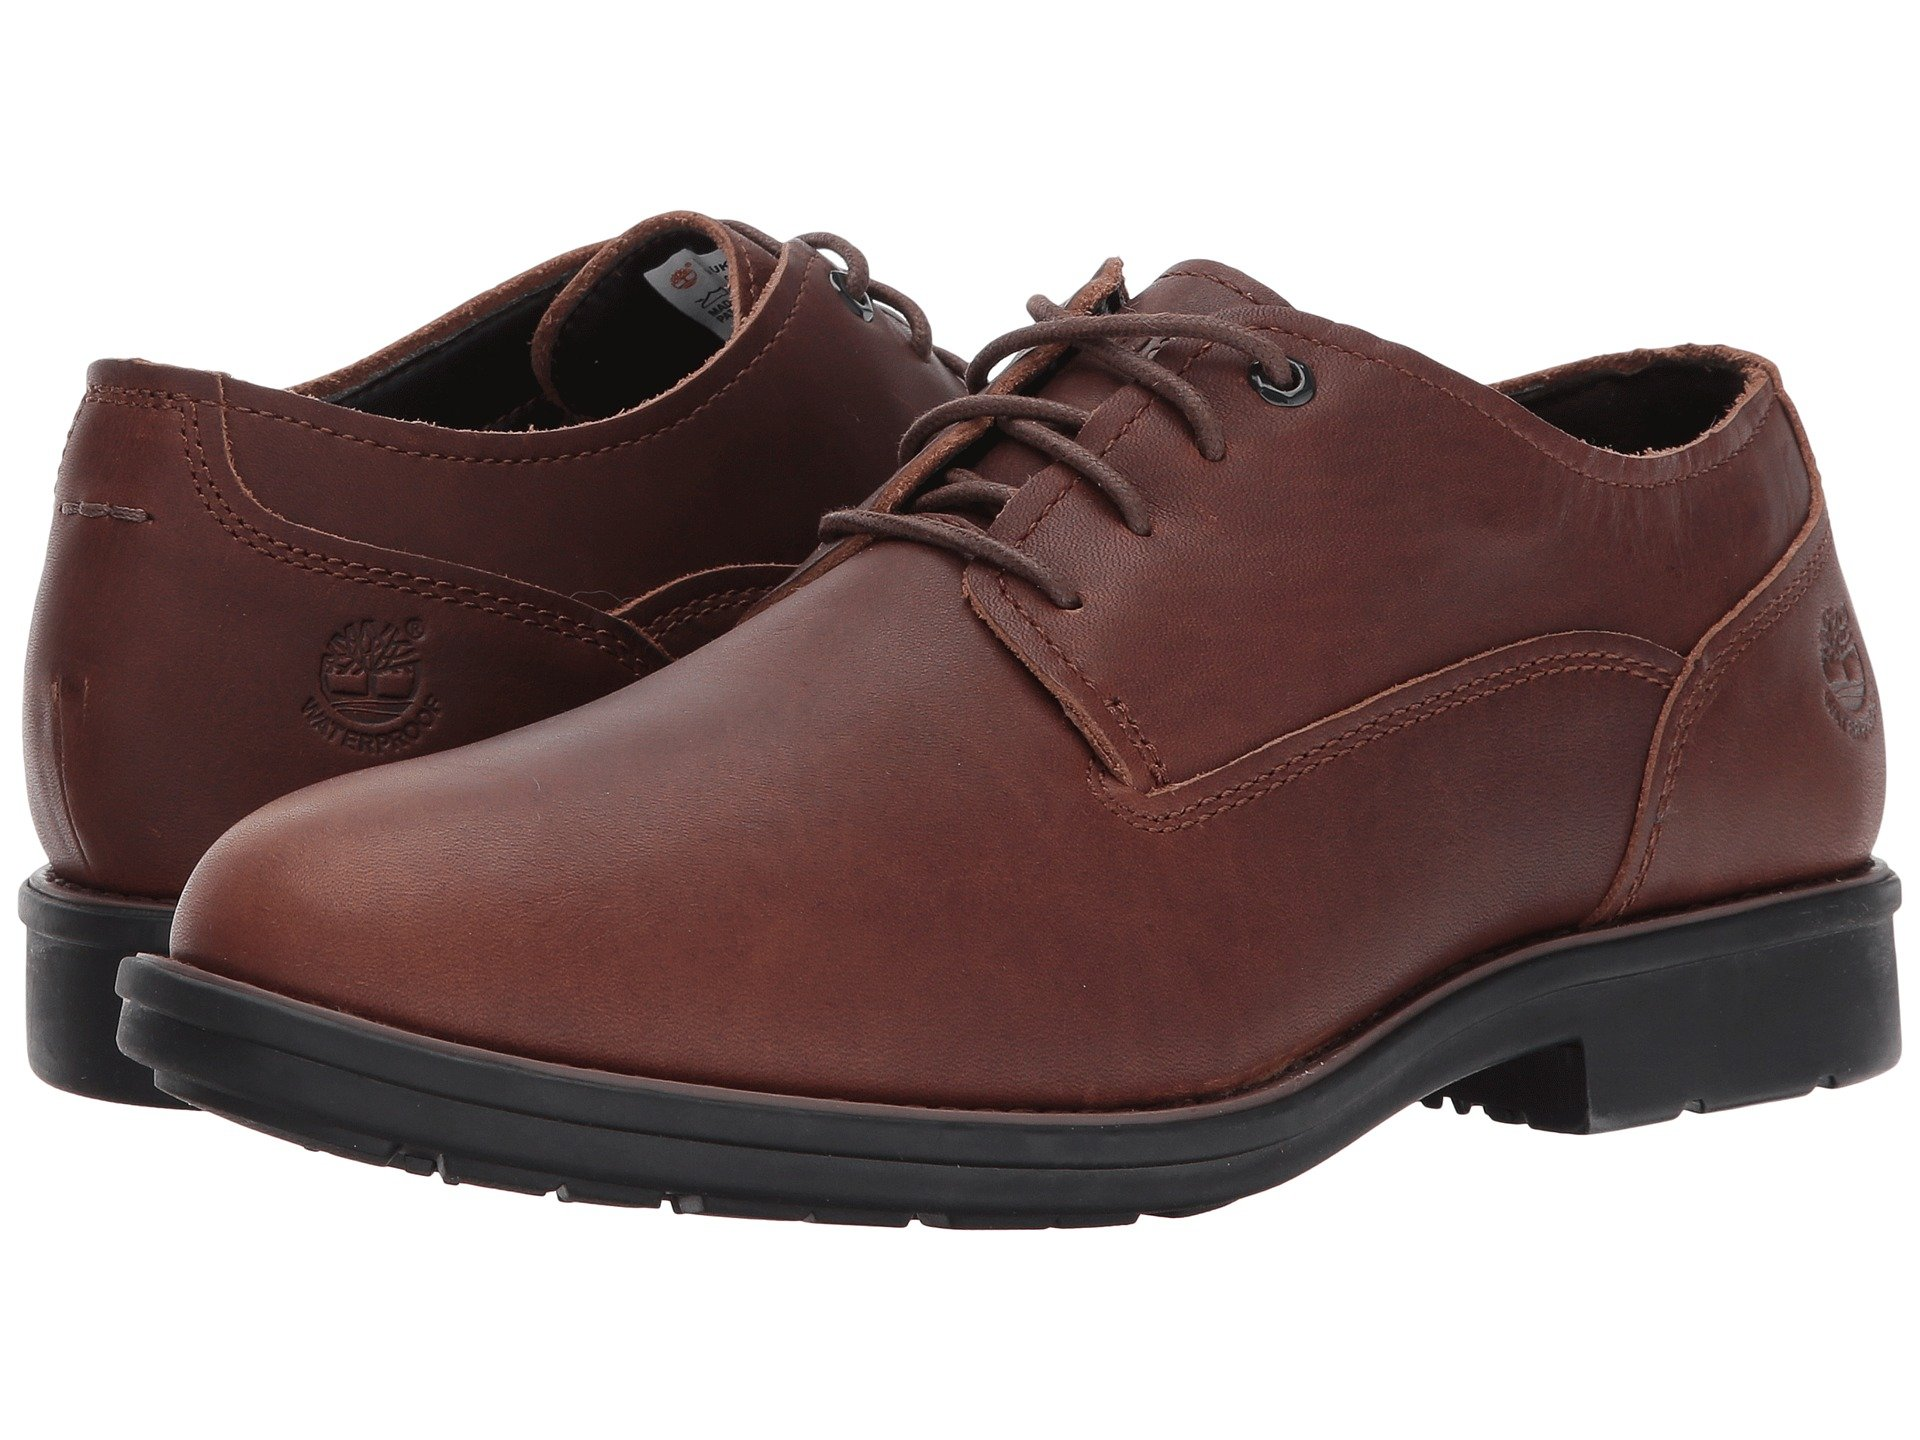 Timberland Carter Notch Waterproof Plain Toe Oxford 6fNEhFu7vC